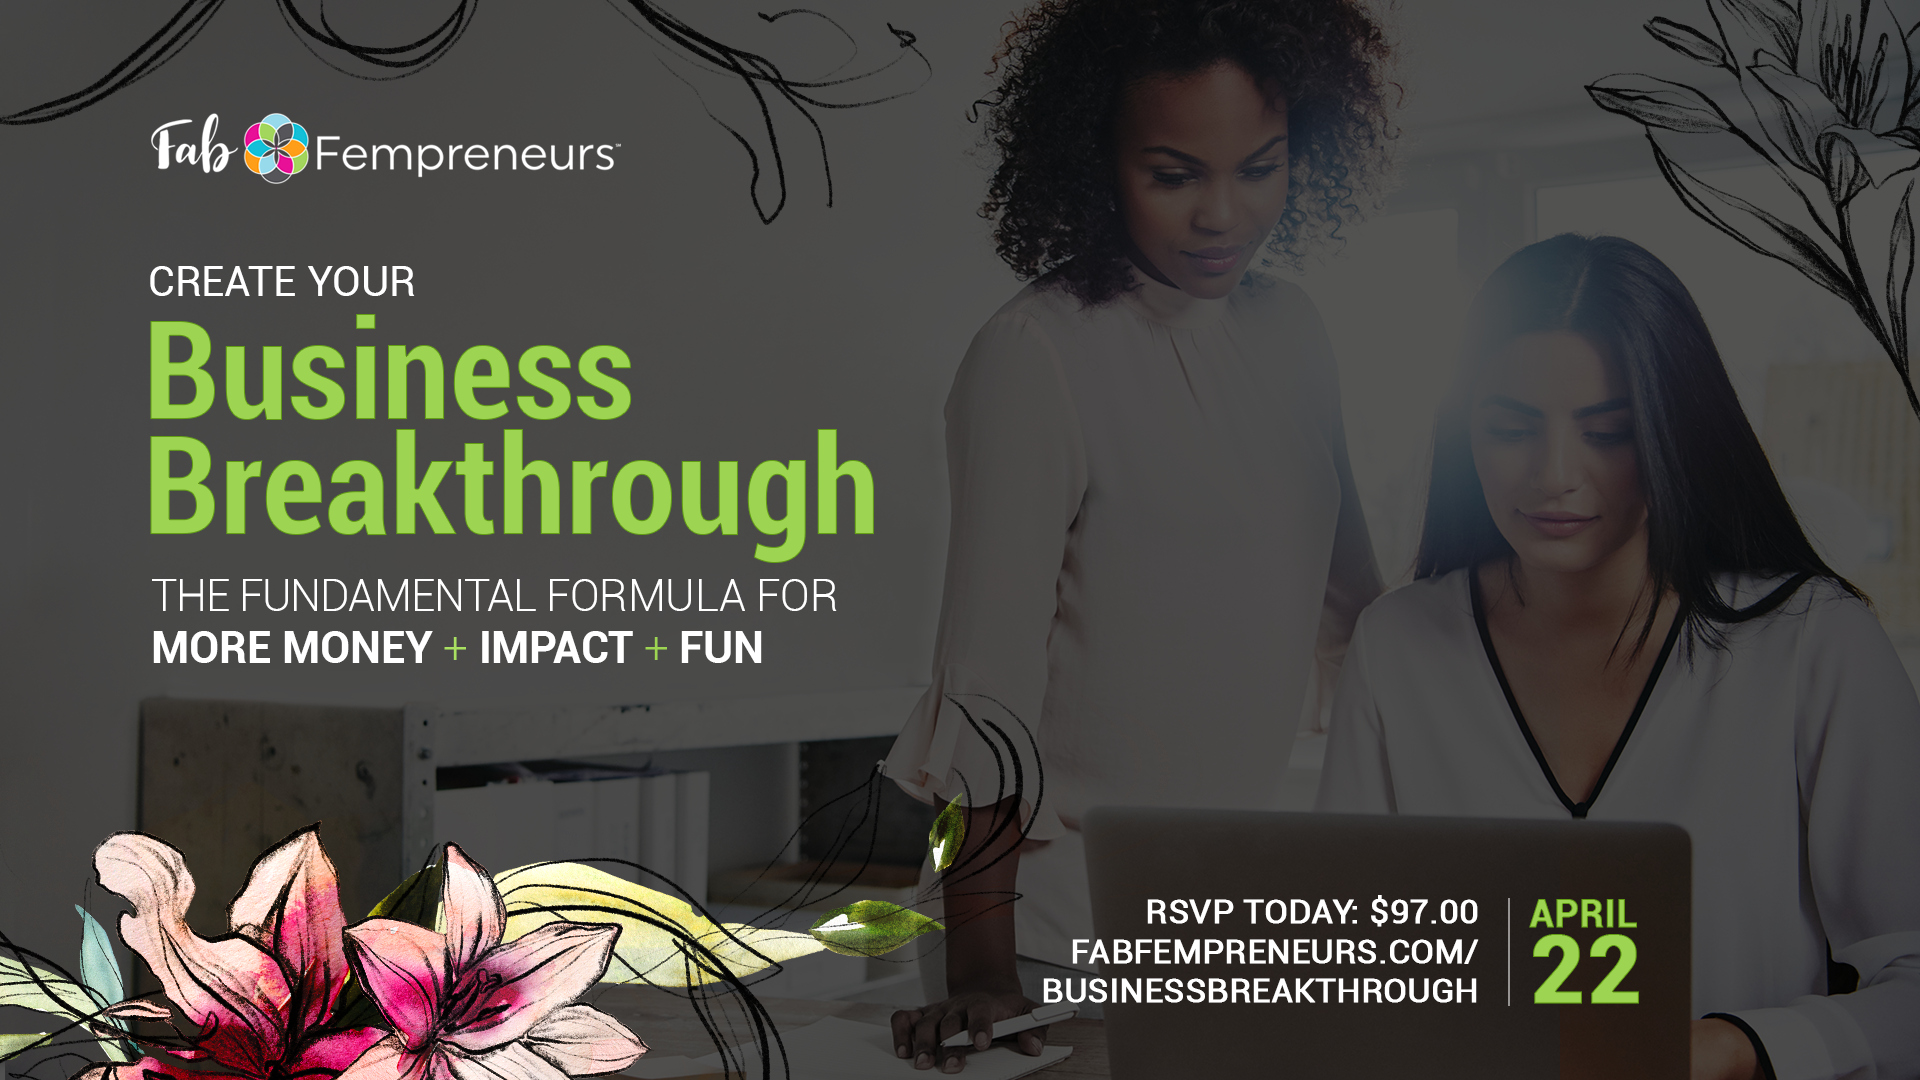 business breakthrough workshop for women entrepreneurs